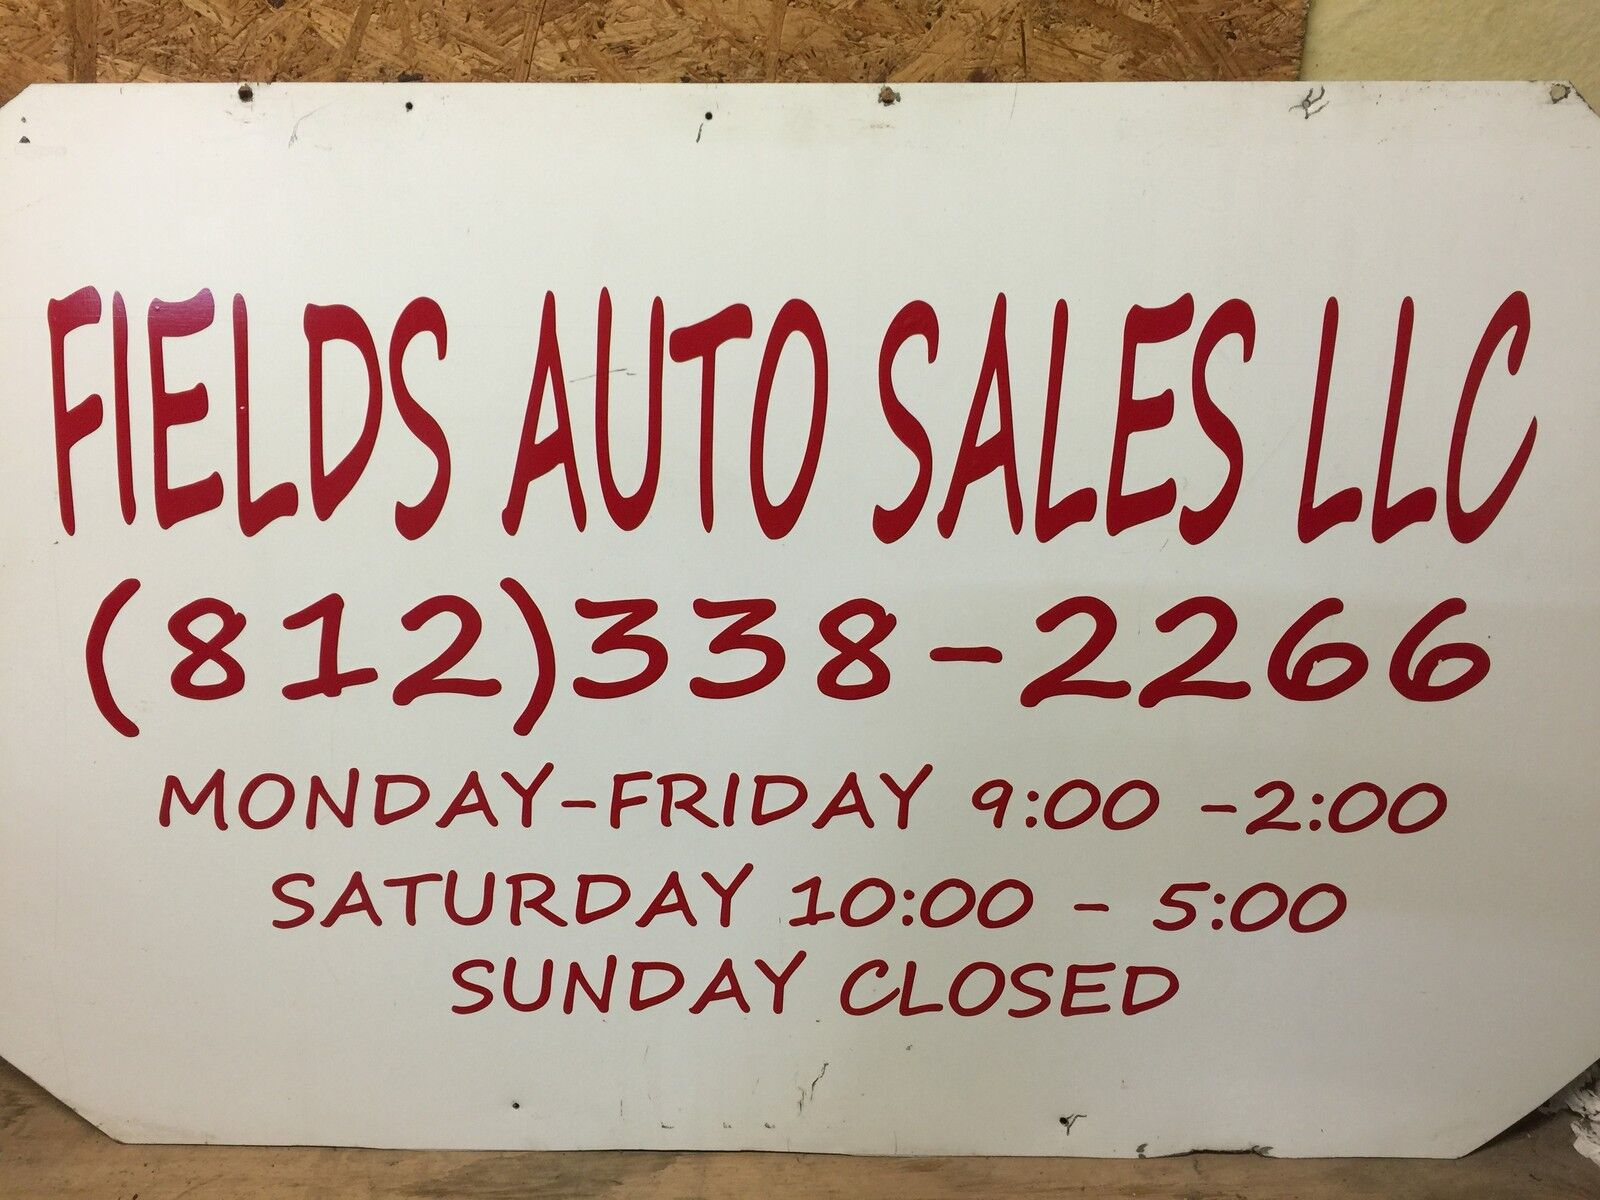 Fields Auto Sales LLC